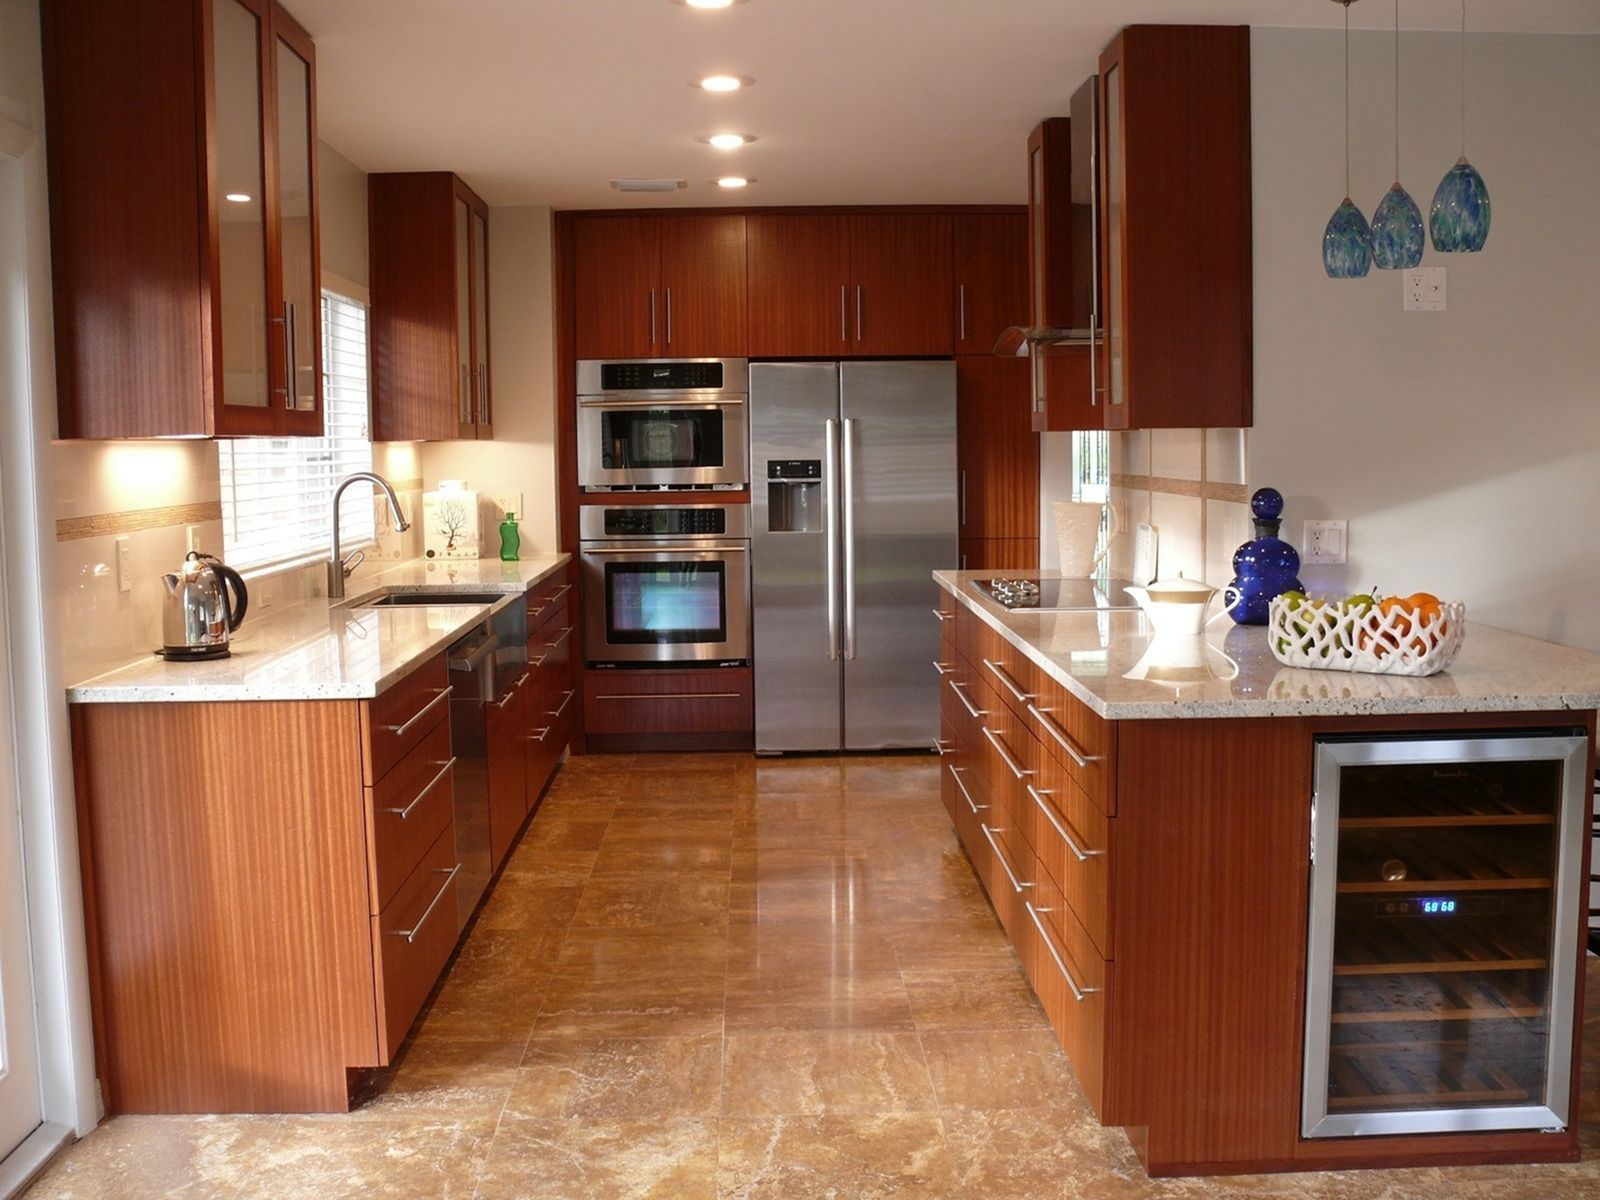 15 Amazing Wooden Cabinet Designs That Fit Your Needs Mahogany Kitchen Mahogany Cabinets Vinyl Flooring Kitchen